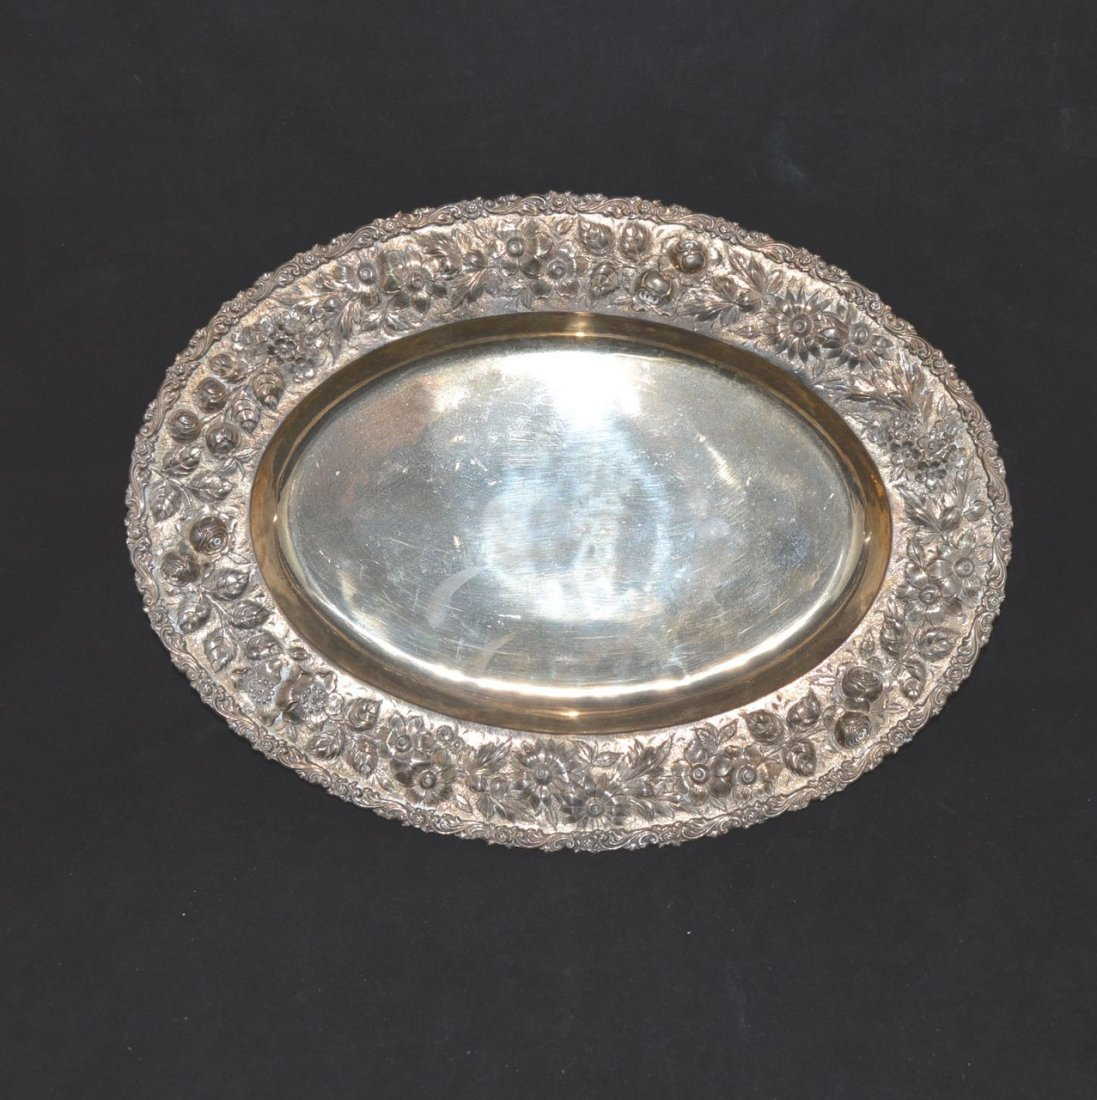 AMERICAN SILVER GILT SERVING TRAY (1908-1915)